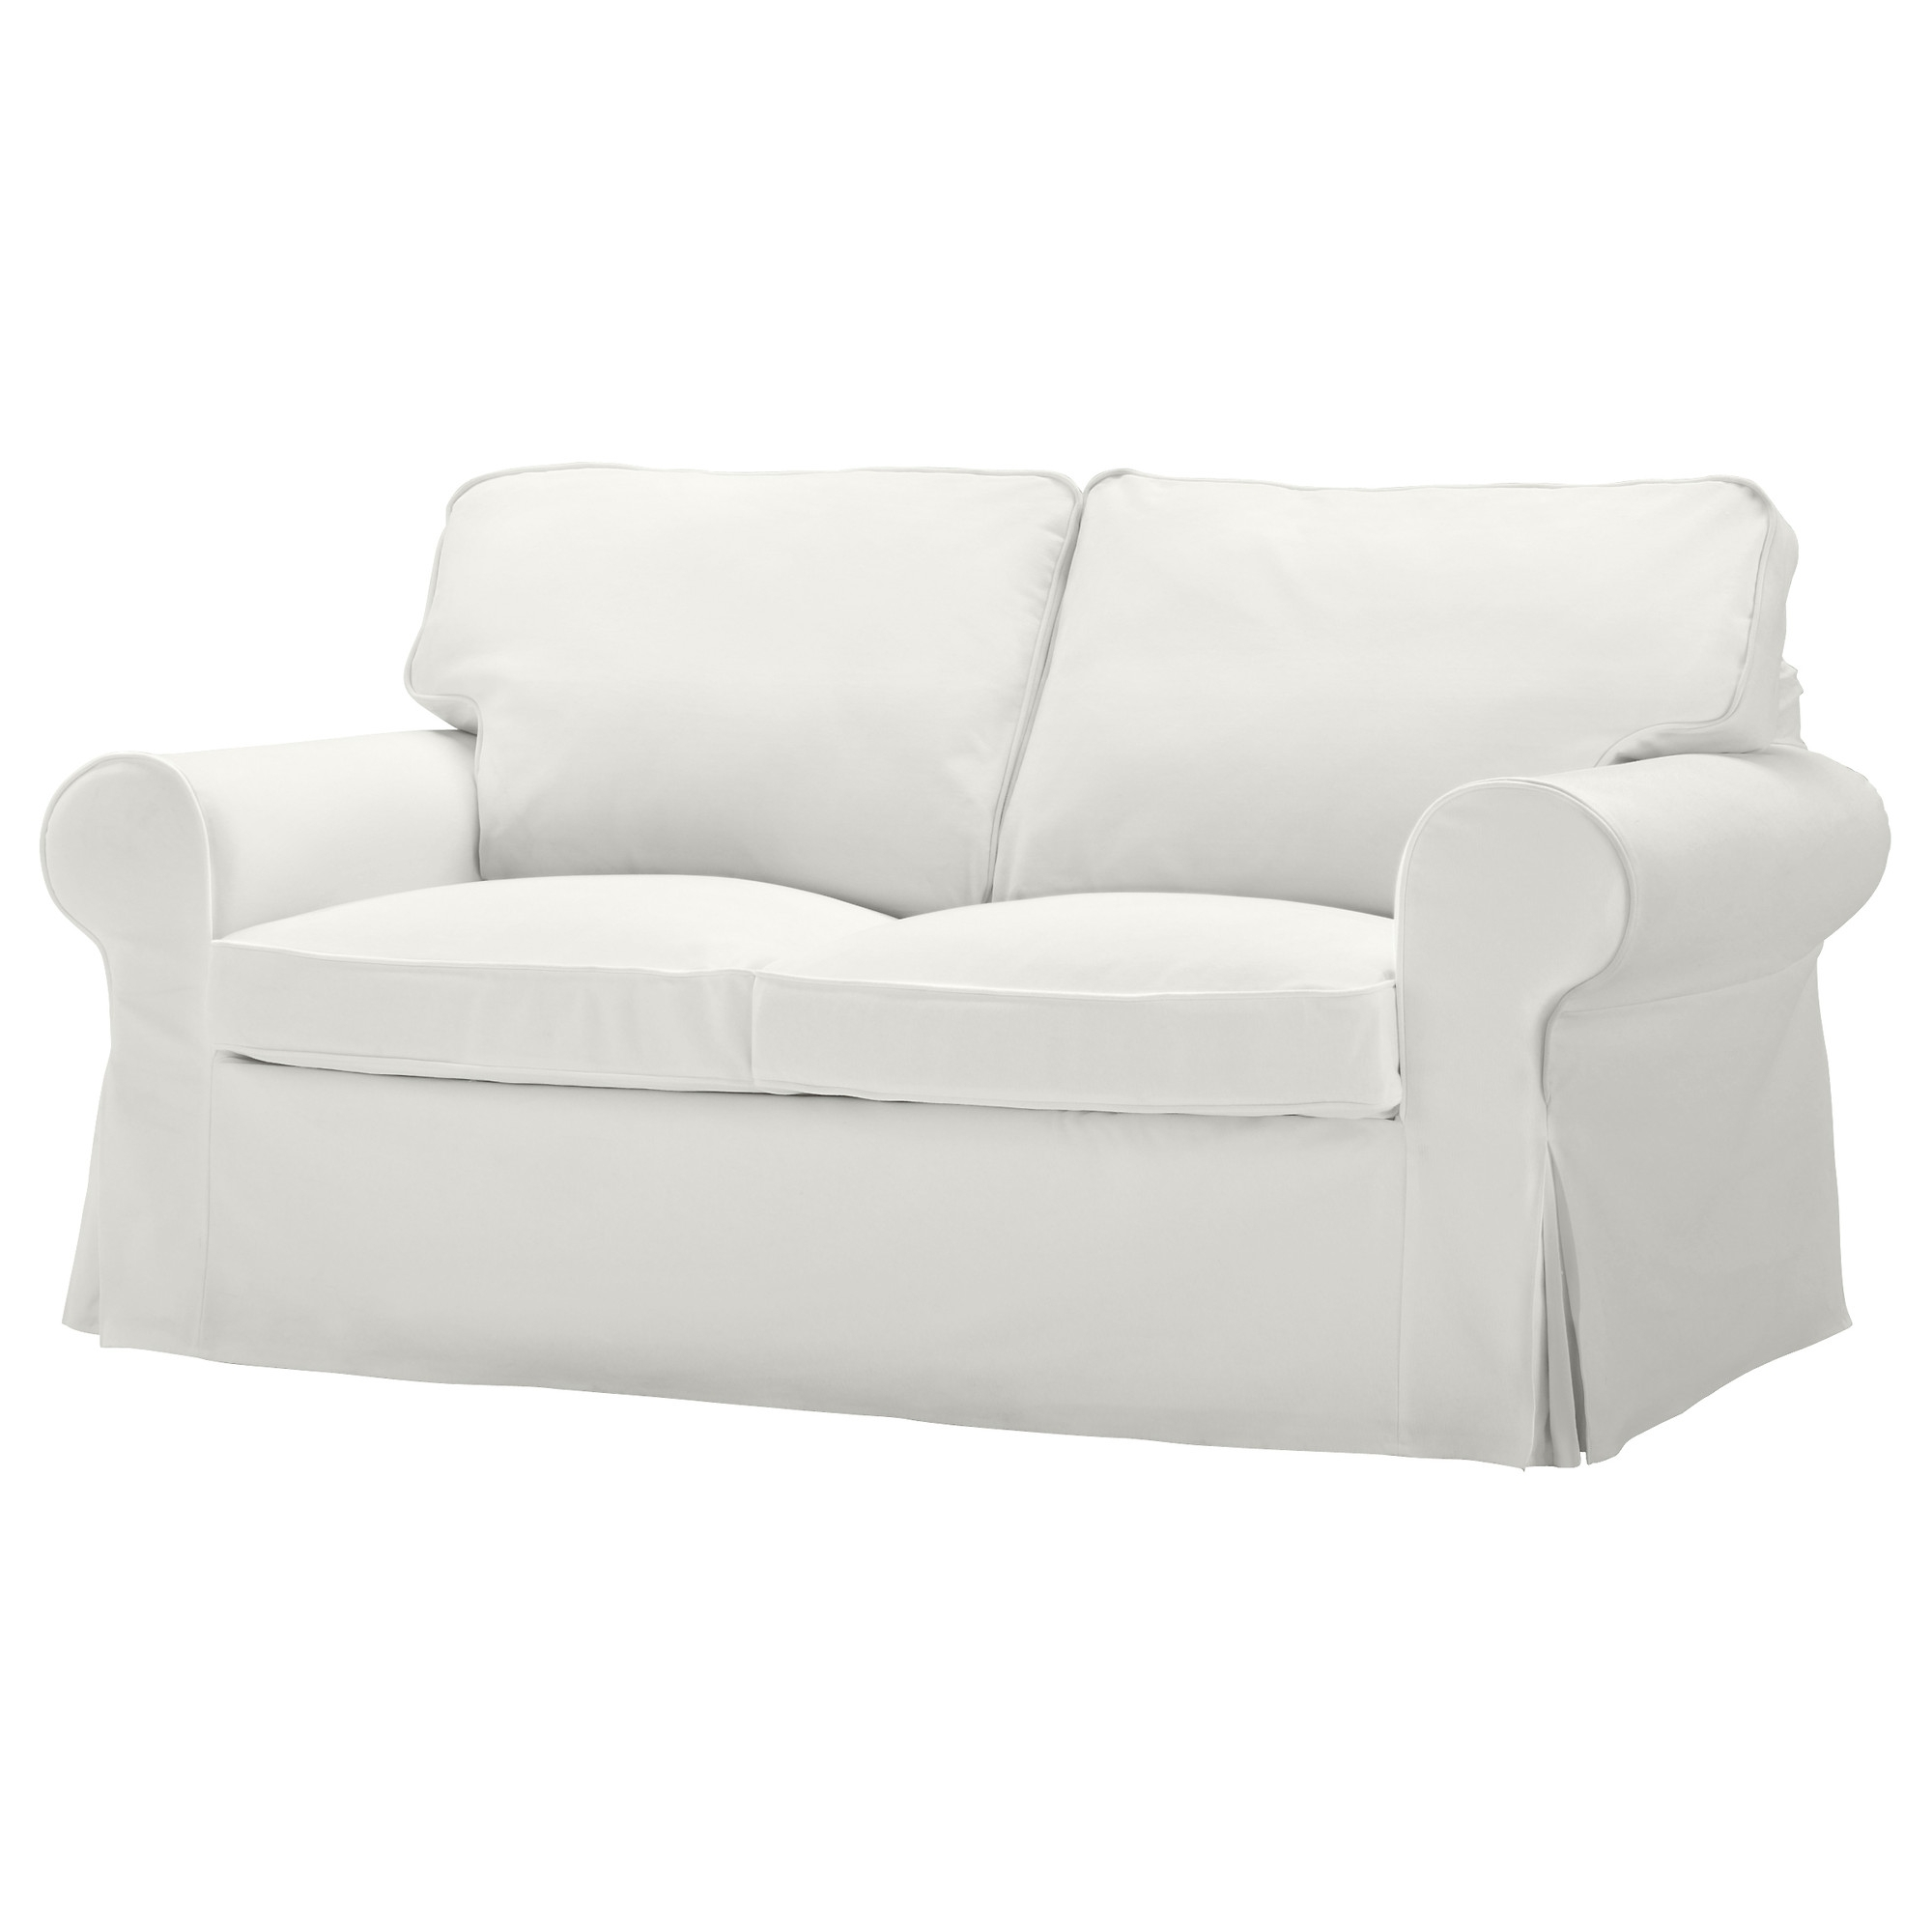 Ektorp Two Seat Sofa Blekinge White | My Style | Pinterest | Love Intended For Taron 3 Piece Power Reclining Sectionals With Right Facing Console Loveseat (Image 6 of 20)